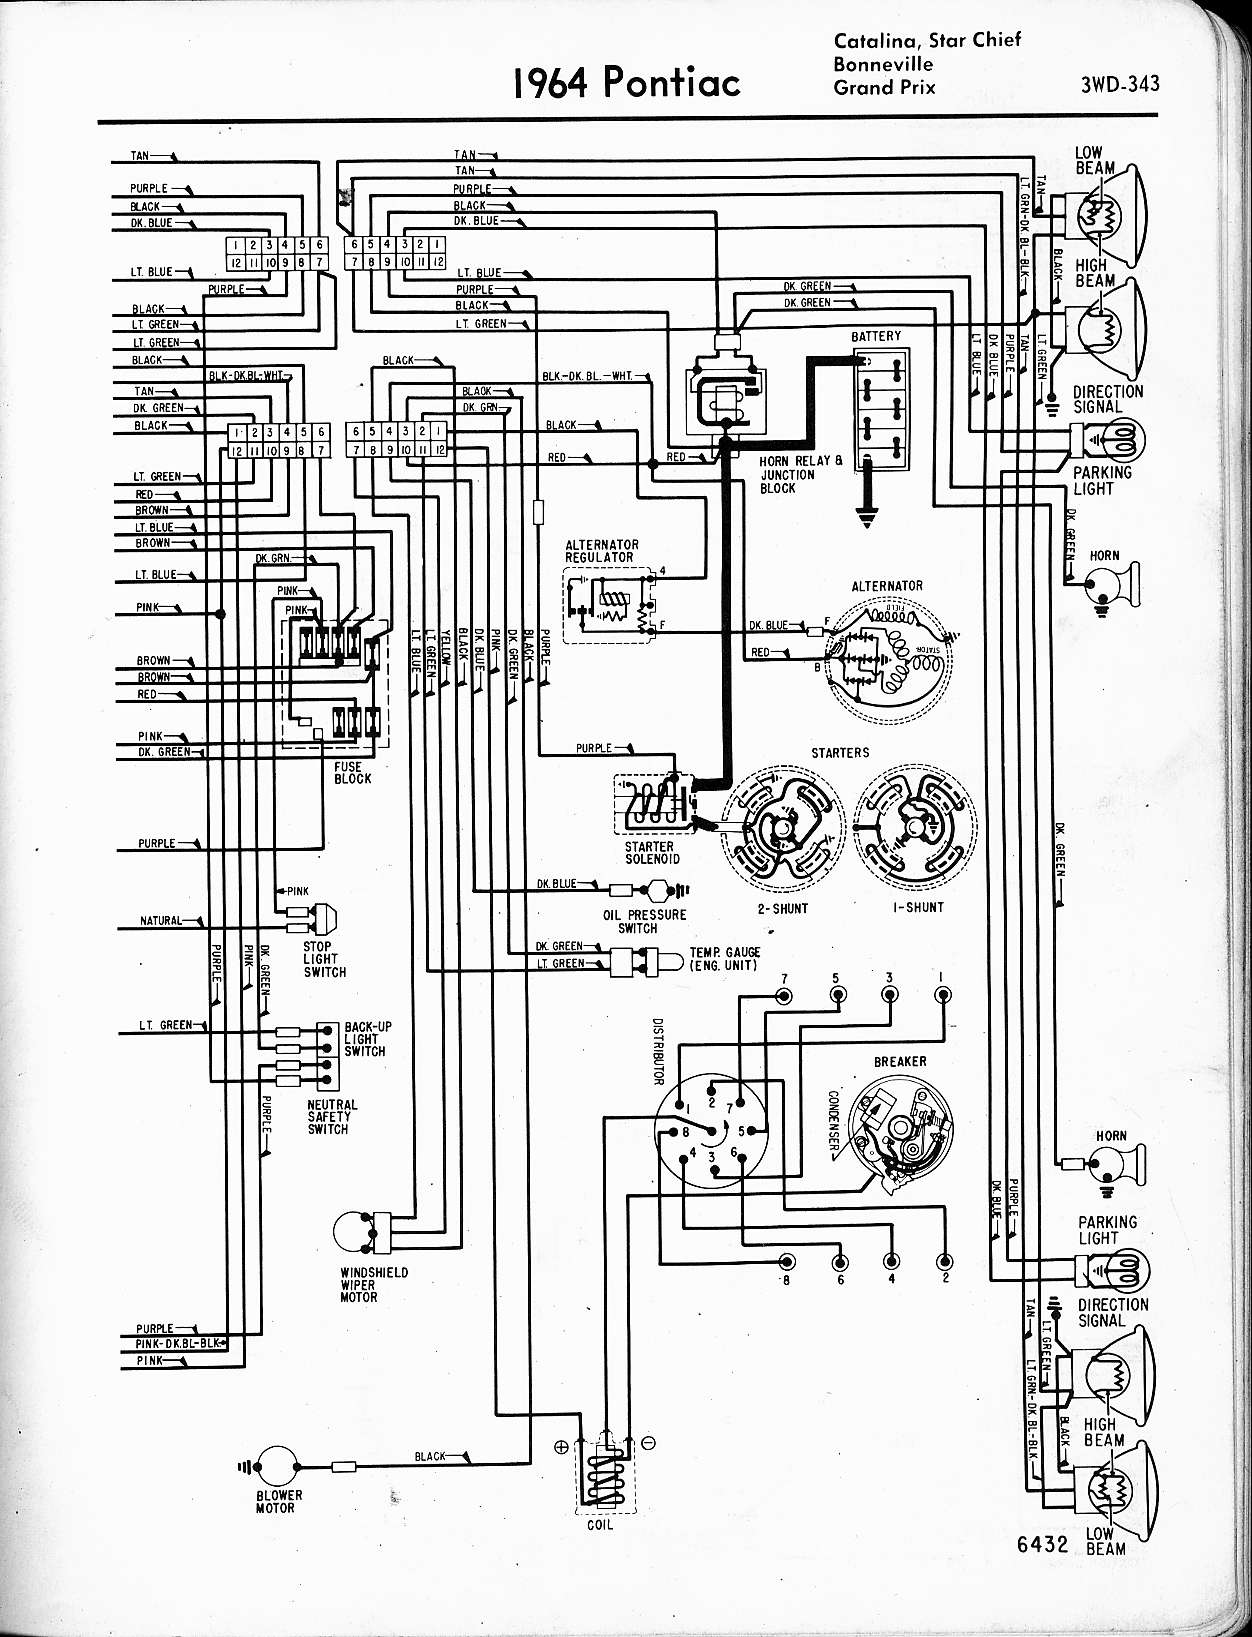 wallace racing wiring diagrams rh wallaceracing com 1964 pontiac parisienne wiring diagram 1964 pontiac tempest wiring diagram